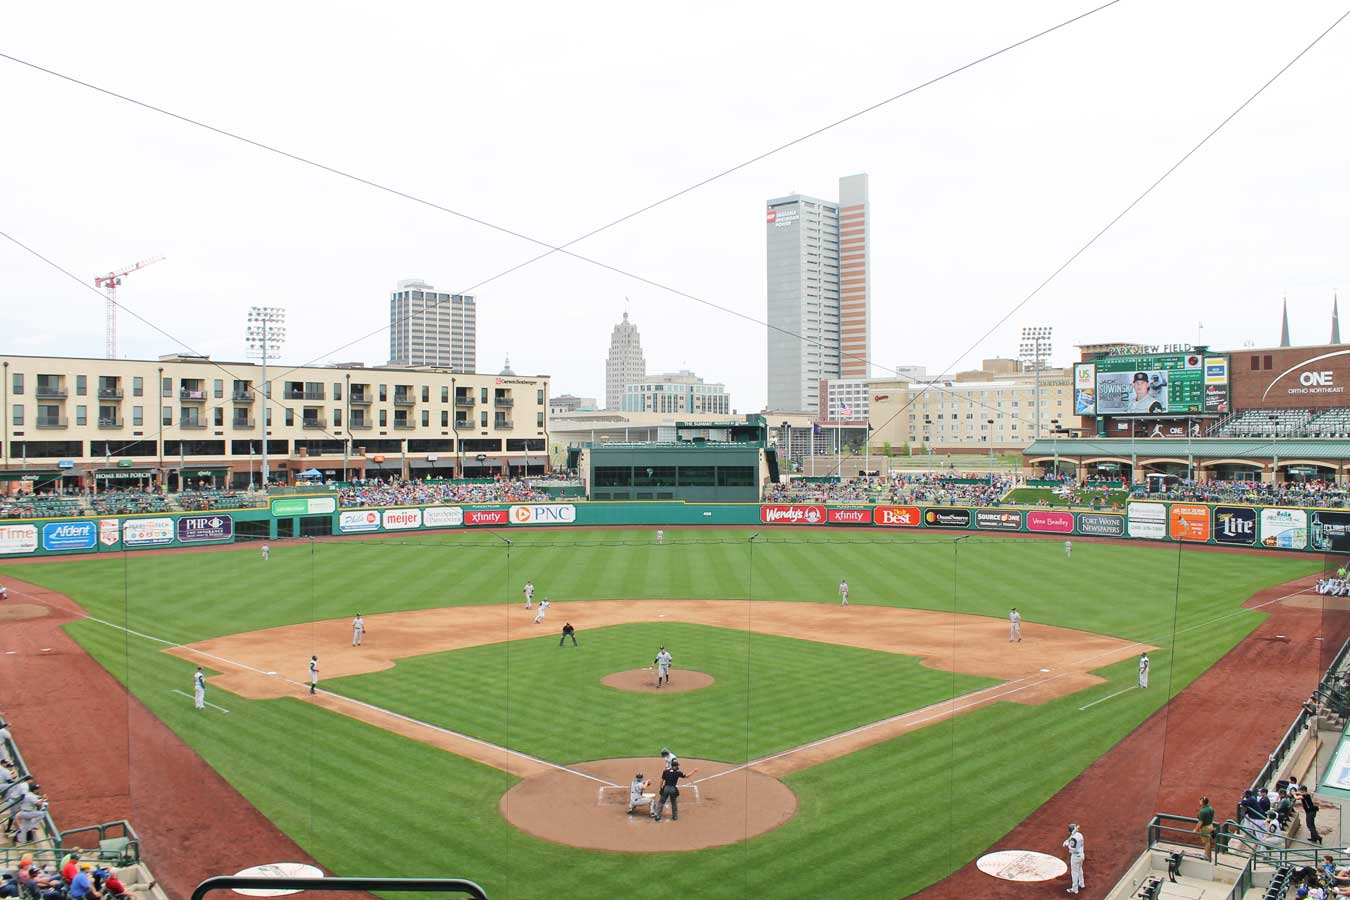 TinCaps Baseball at Parkview Field - Fort Wayne, Indiana (top rated minor league ballpark and amazing food selection!) // The Weekend Getaway You've Overlooked: Visit Fort Wayne, Indiana [via Wading in Big Shoes] // Located equidistantly from Chicago, Cincinnati, and Detroit, Fort Wayne, Indiana is a fun midwest destination that captures a perfect blend of city, nature, and local flavors! See what I experienced on my trip to Fort Wayne and learn what makes Indiana's second-largest city the perfect spot for a weekend getaway.